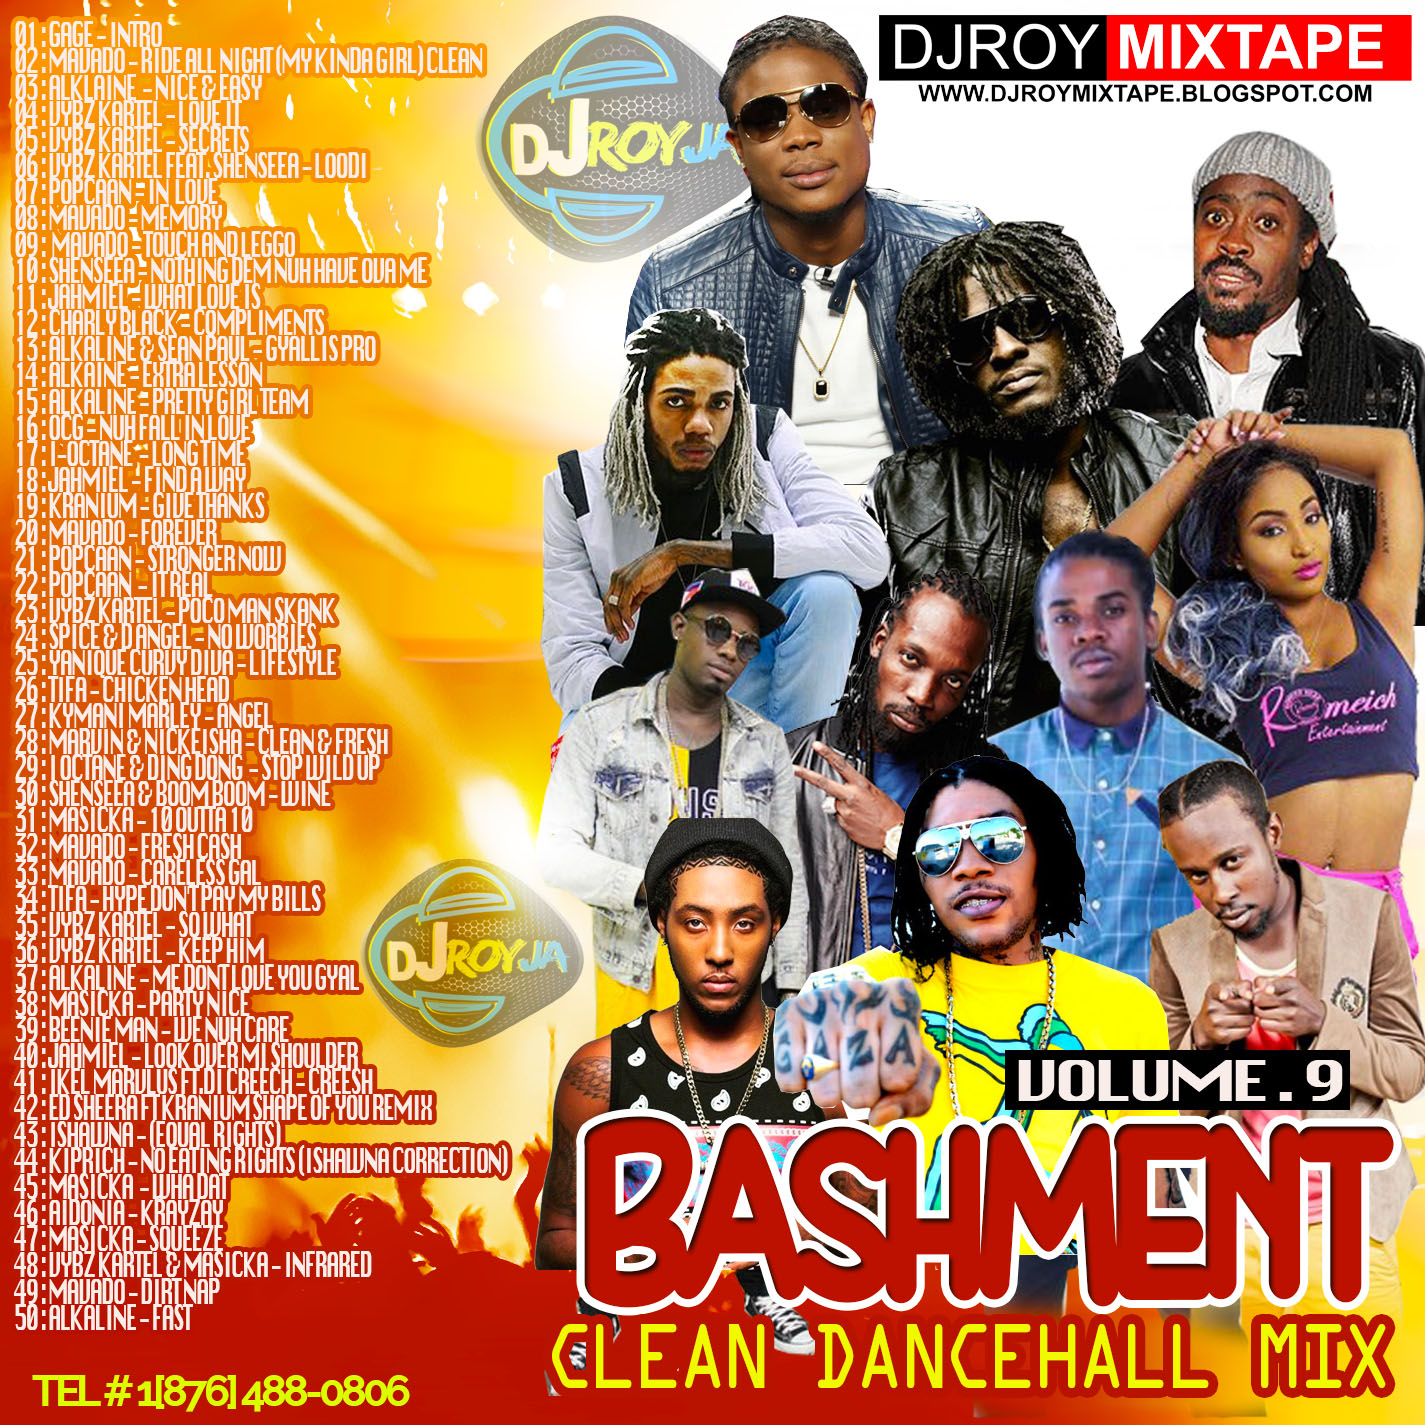 DJ ROY BASHMENT CLEAN DANCEHAll MIX VOL.9.jpg